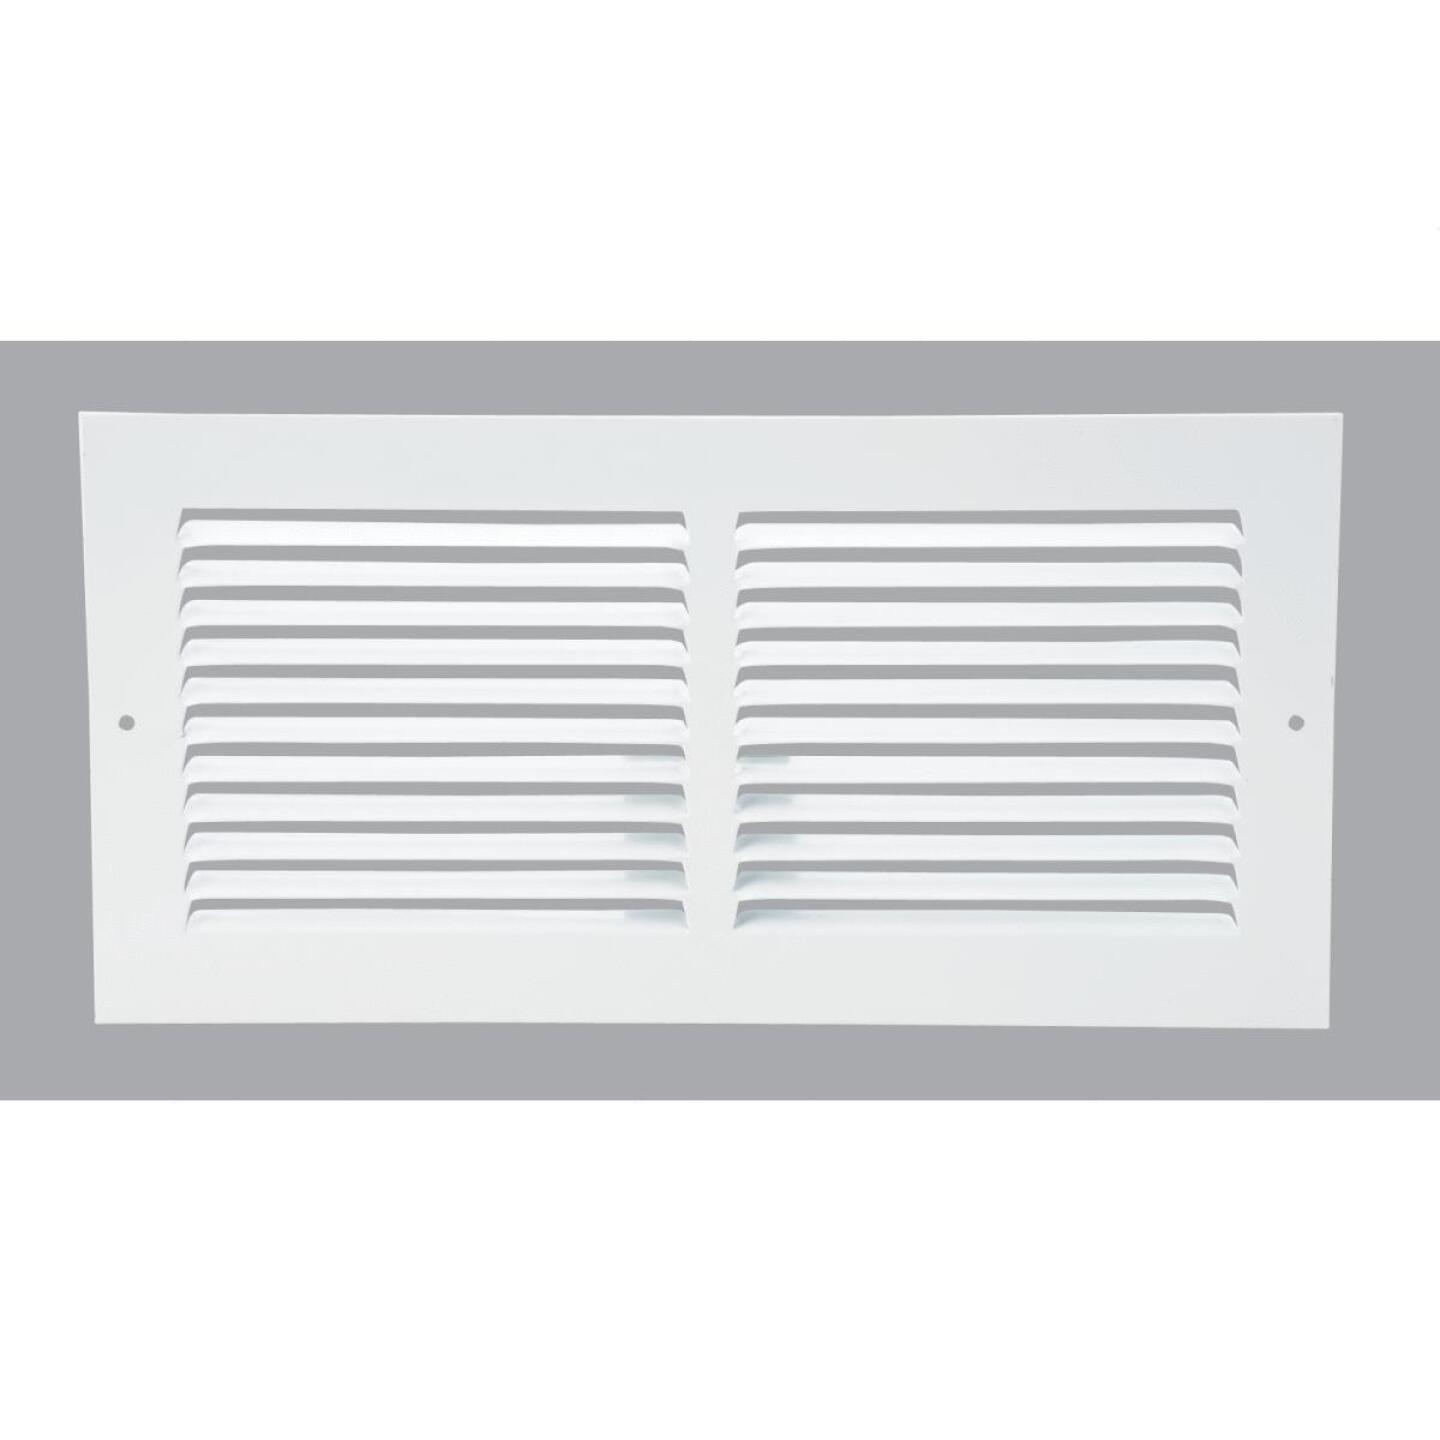 Home Impressions 6 In. x 14 In. Stamped Steel Return Air Grille Image 1